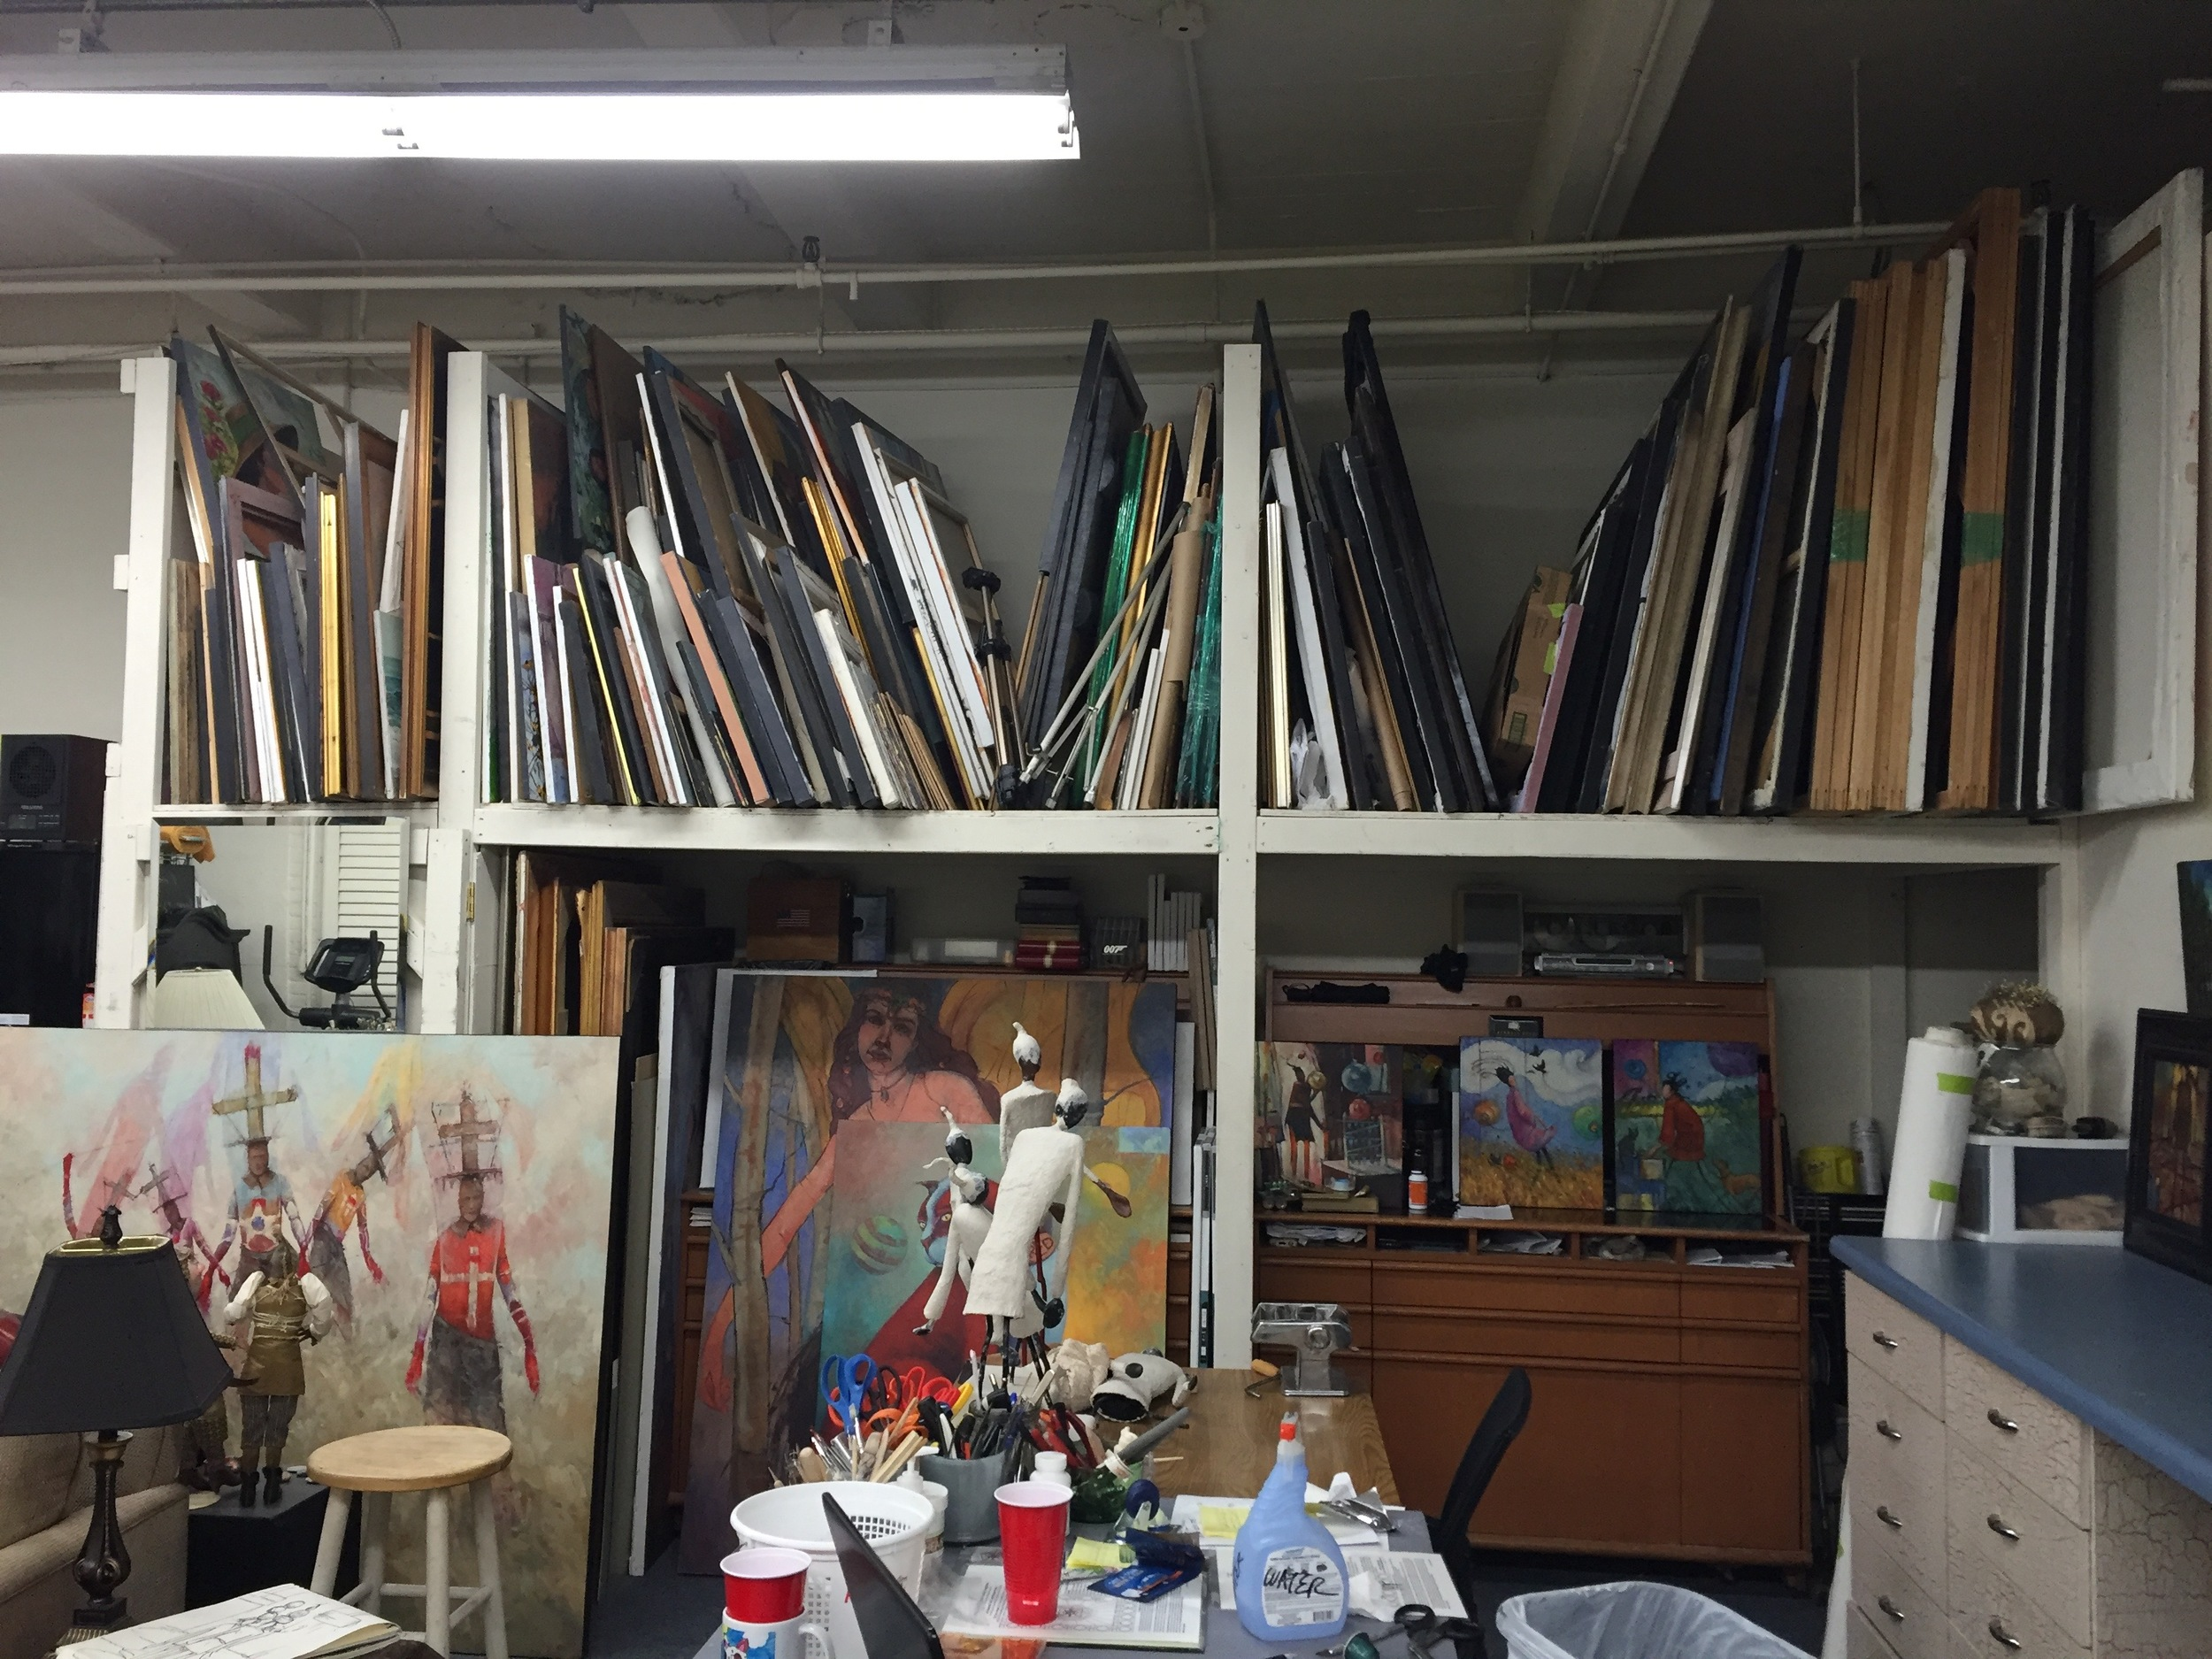 Storage for painting and files